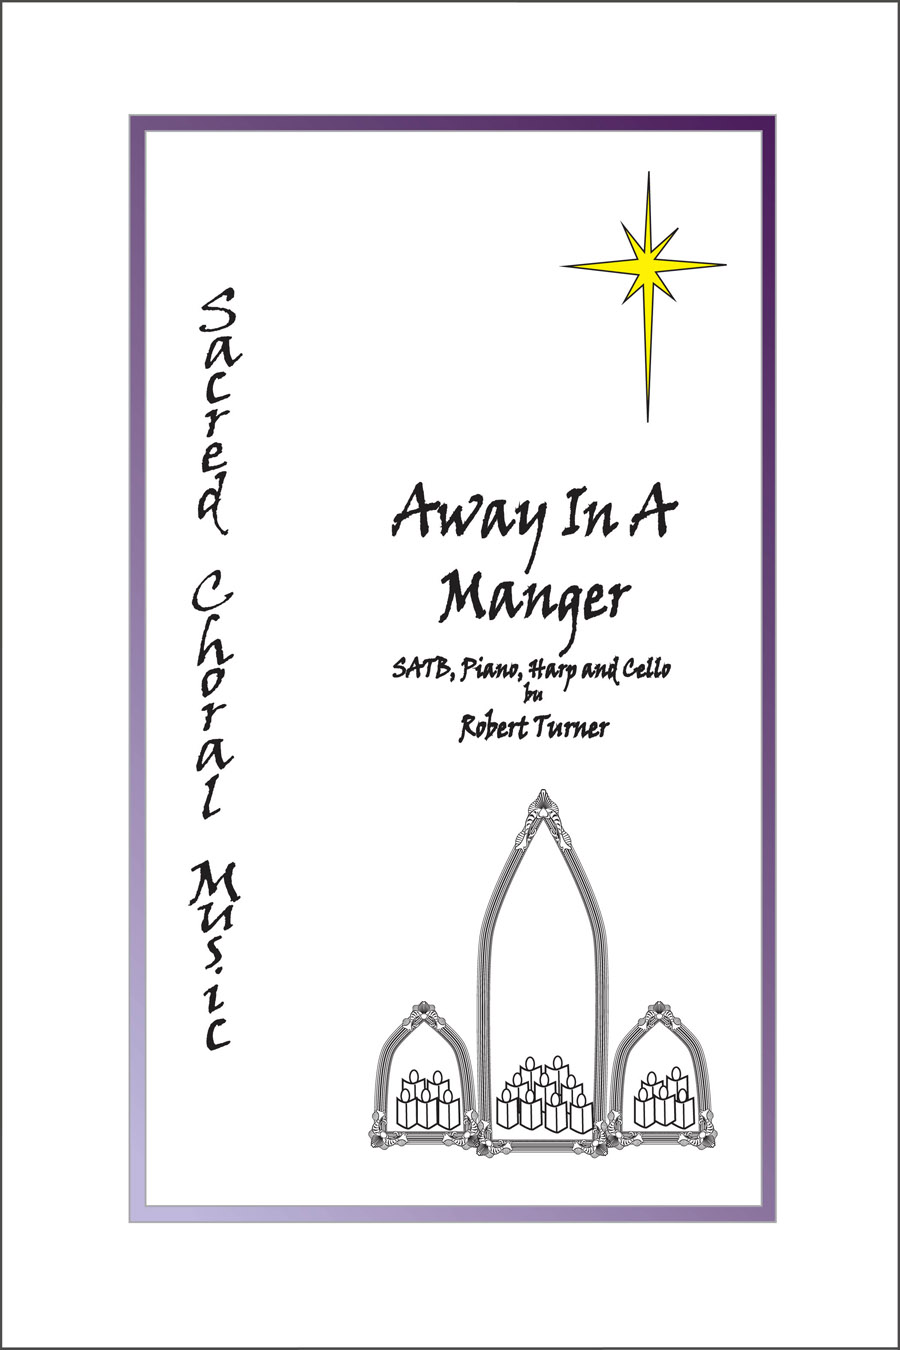 Away in A Manger for Choir, piano, harp and cello